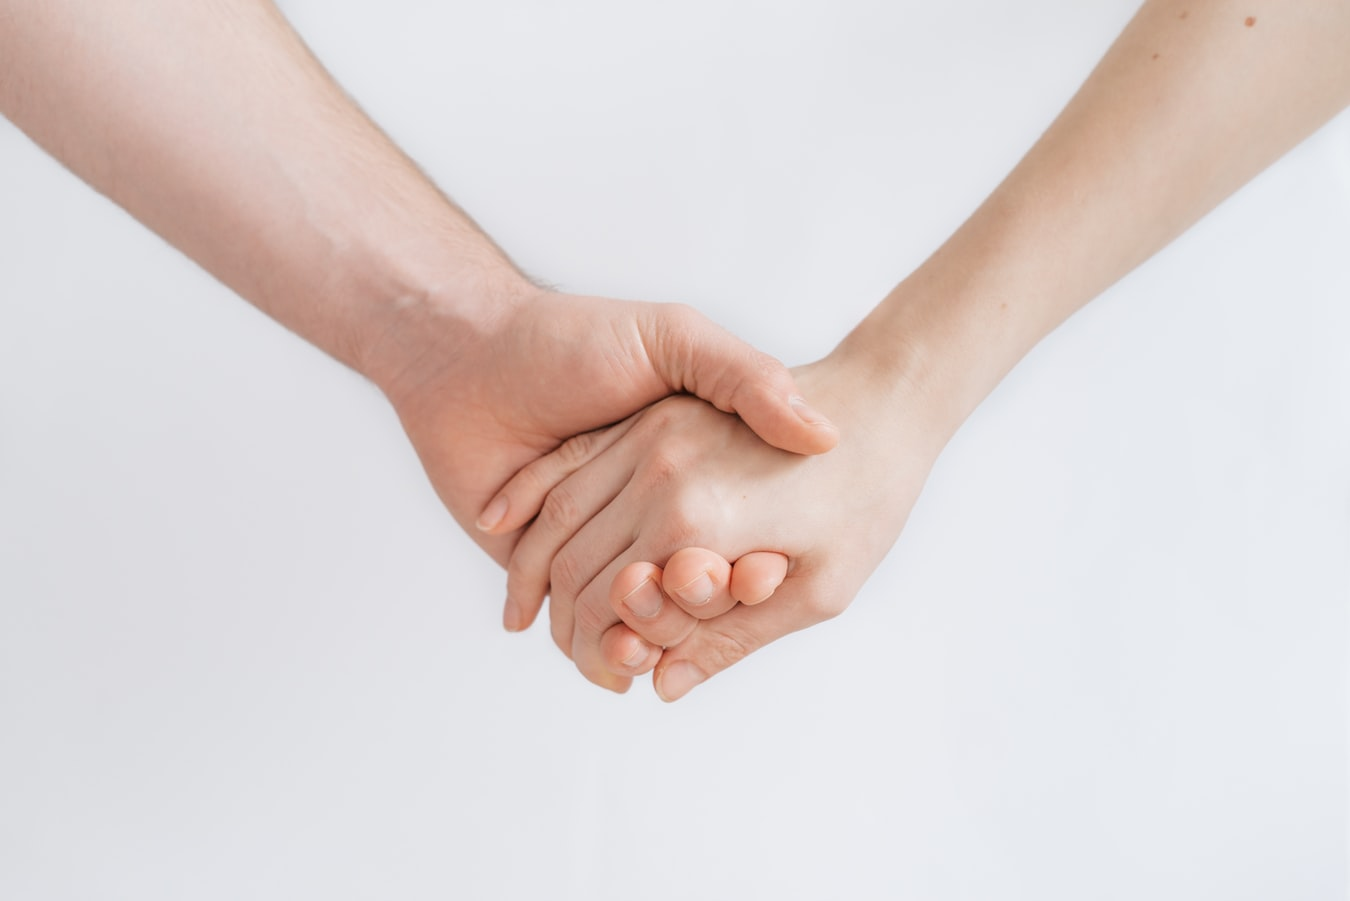 Two hands coming together